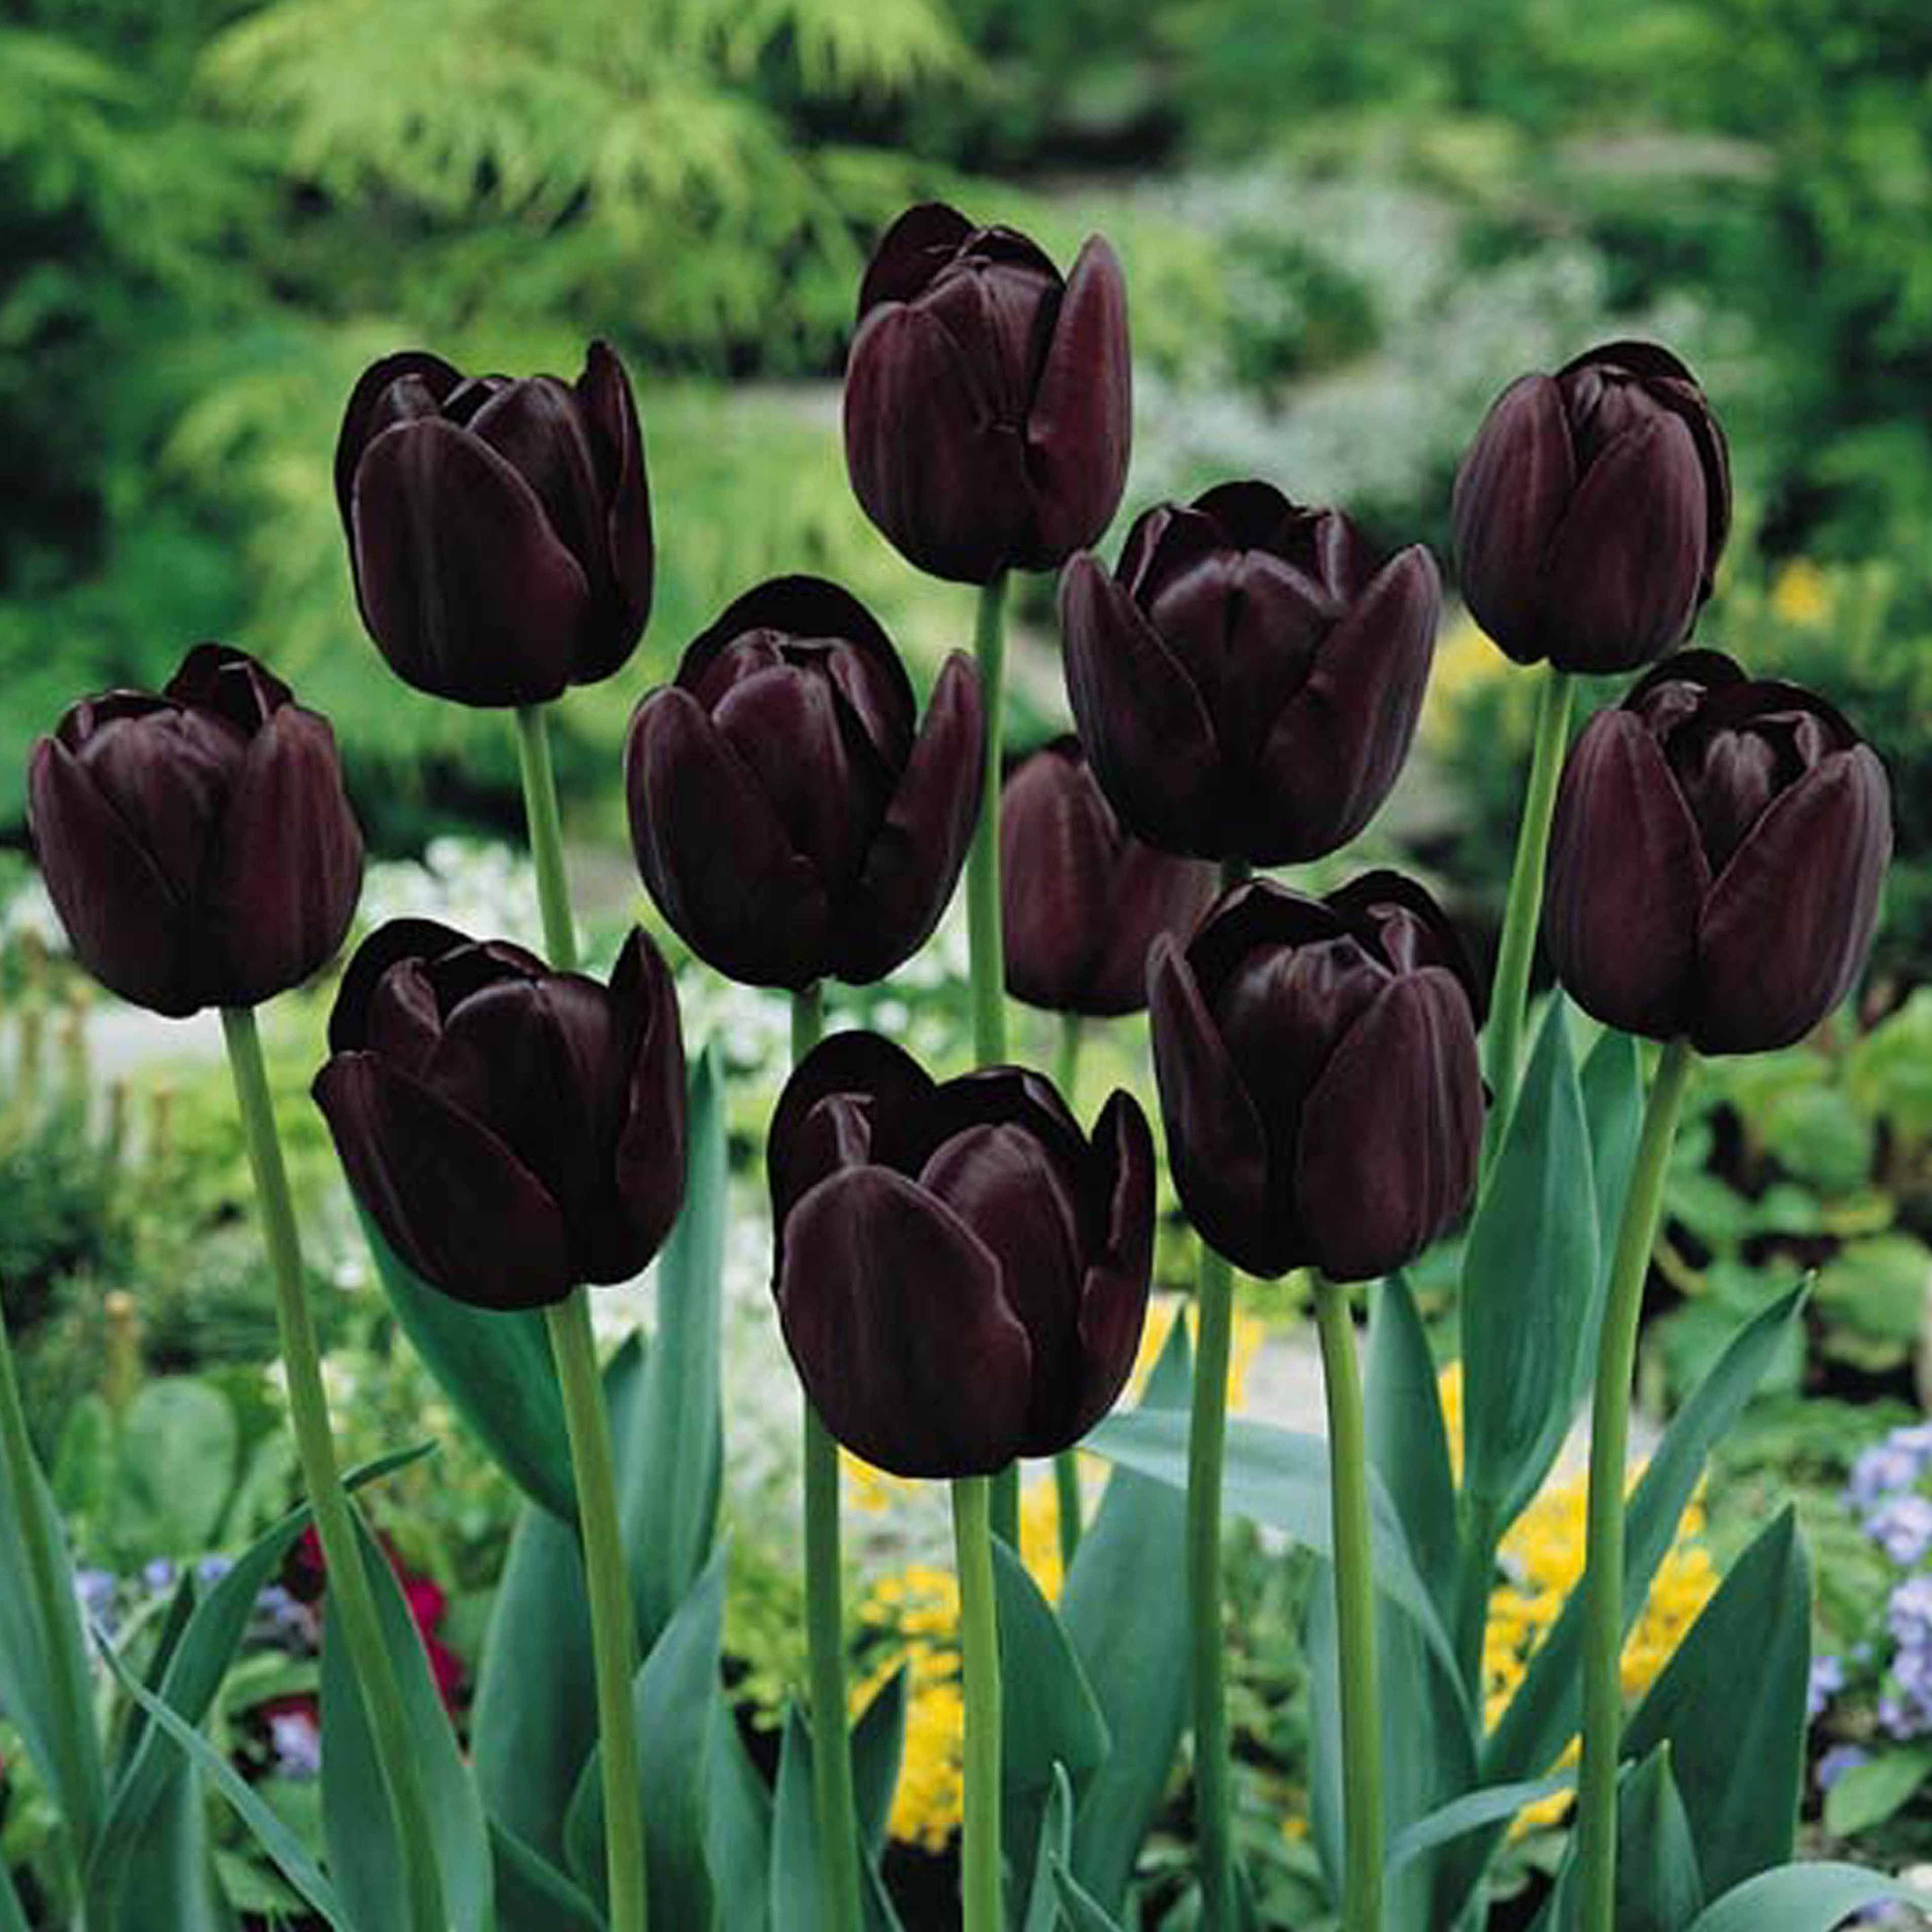 3 Most Unusual Tulips To Plant For Spring Bulb Flowers Tulip Seeds Tulip Bulbs